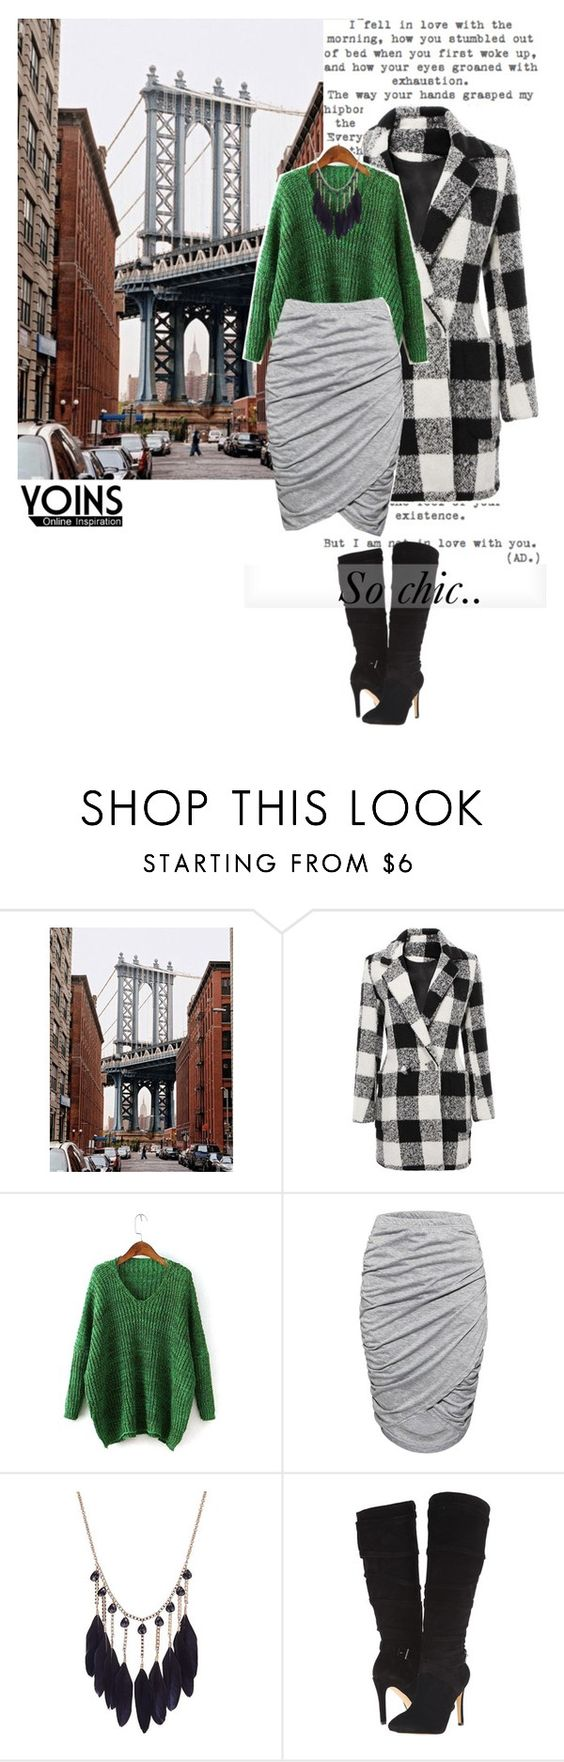 """Yoins 4/10"" by nejra-e ❤ liked on Polyvore featuring Twenty and GUESS"